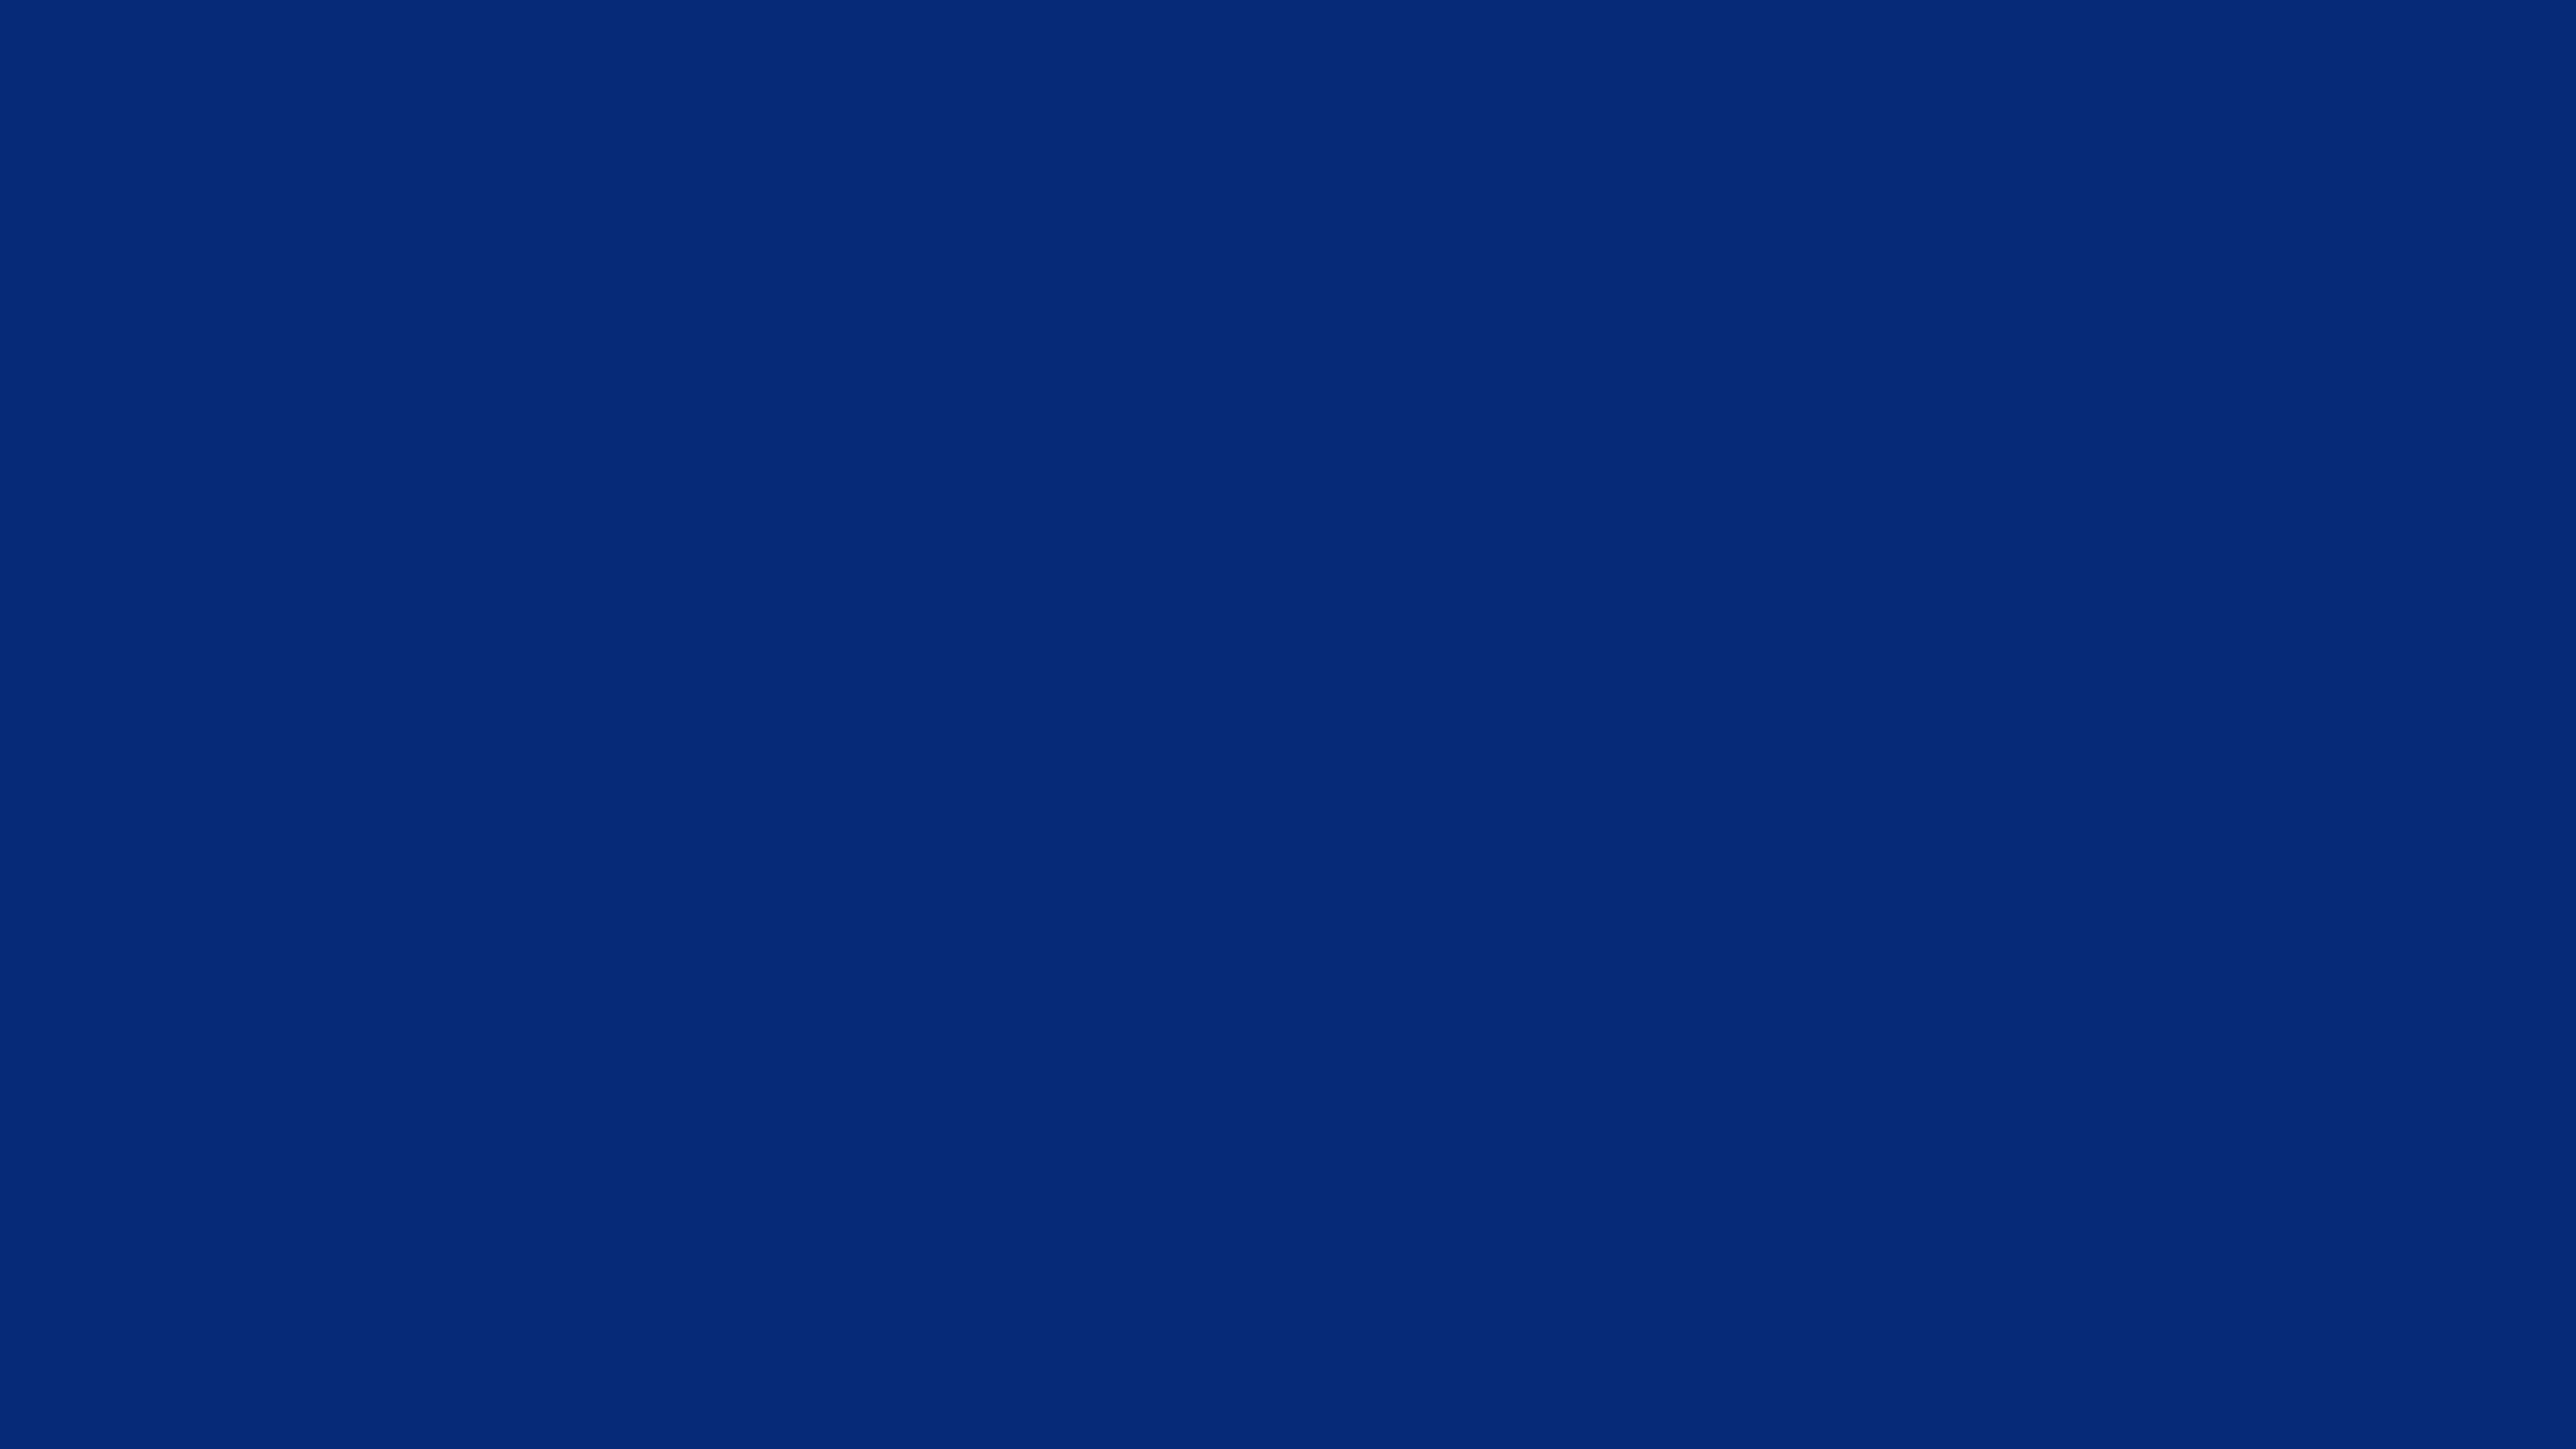 3840x2160 Catalina Blue Solid Color Background